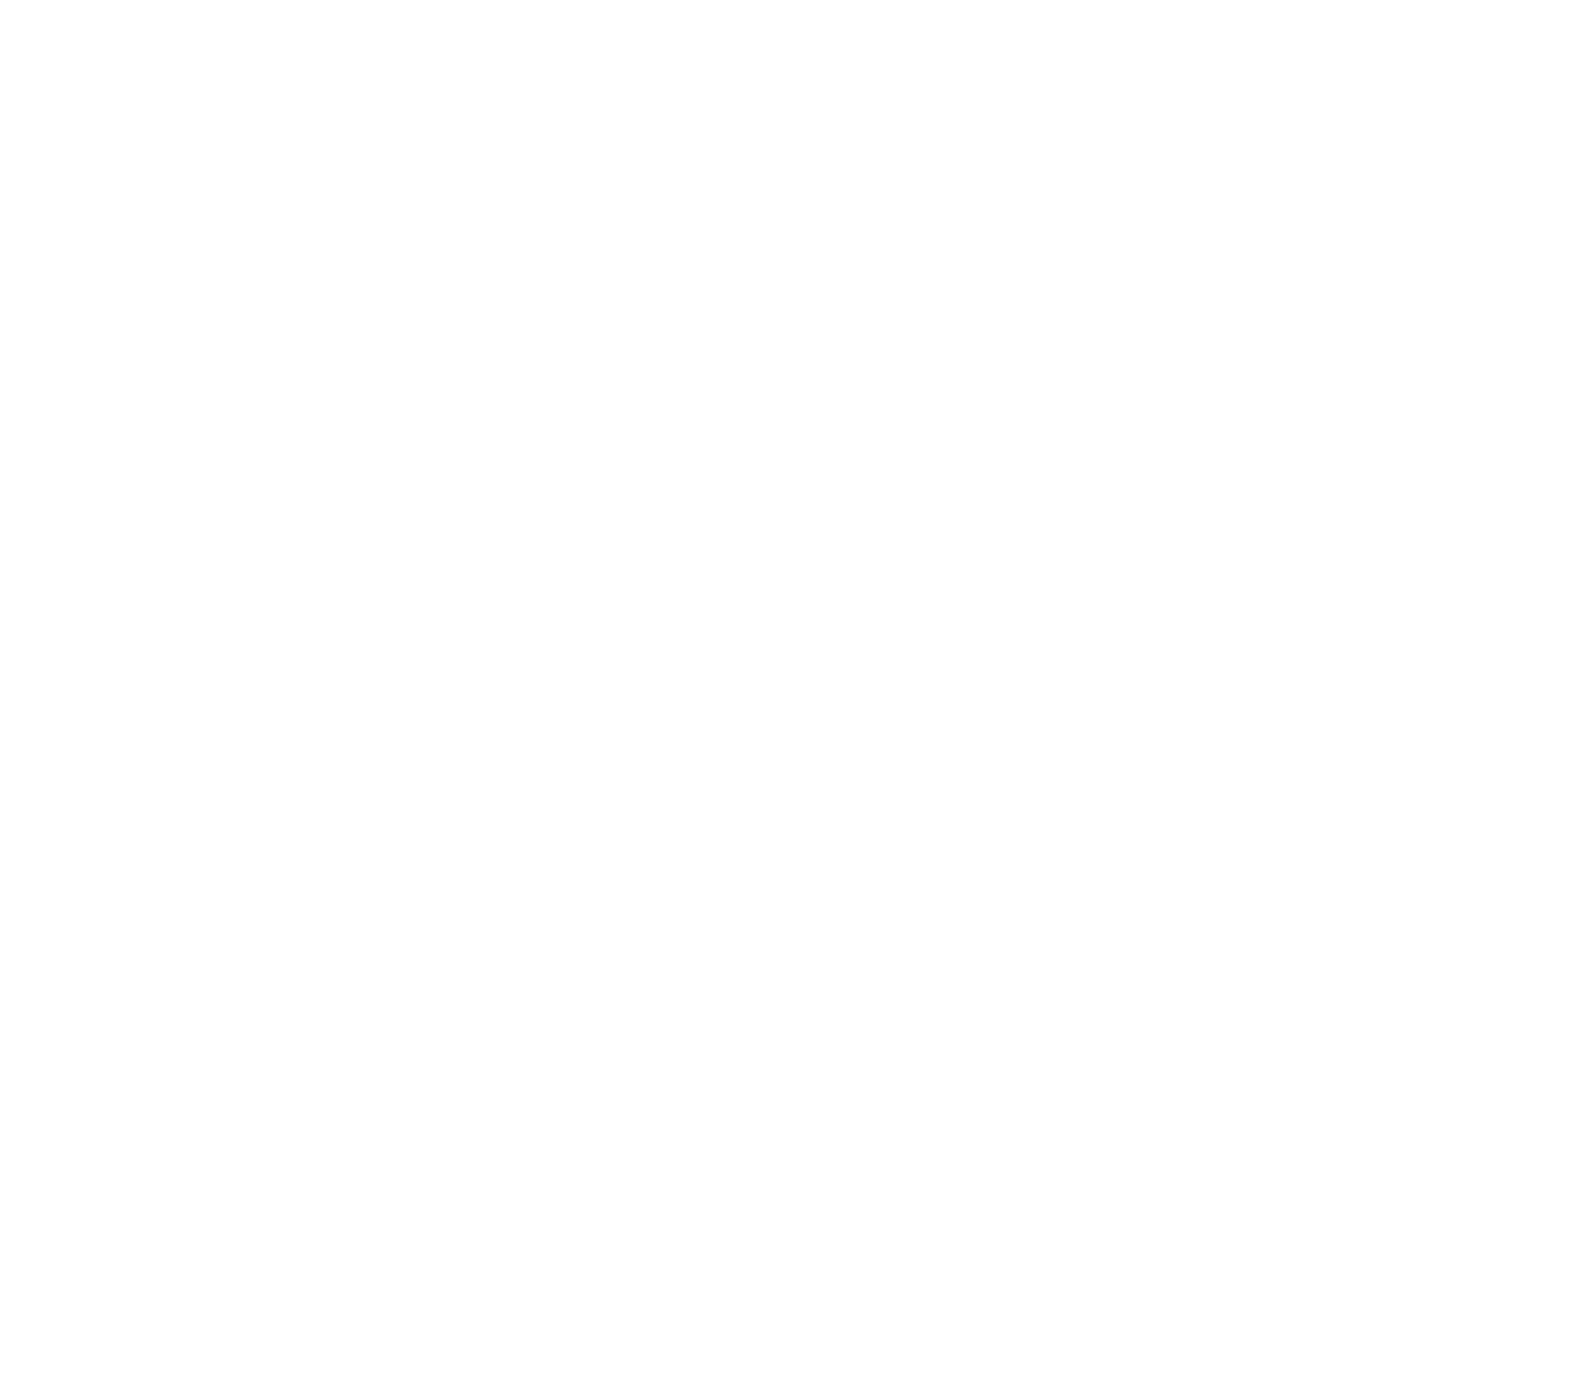 Vineyard Crust Co.